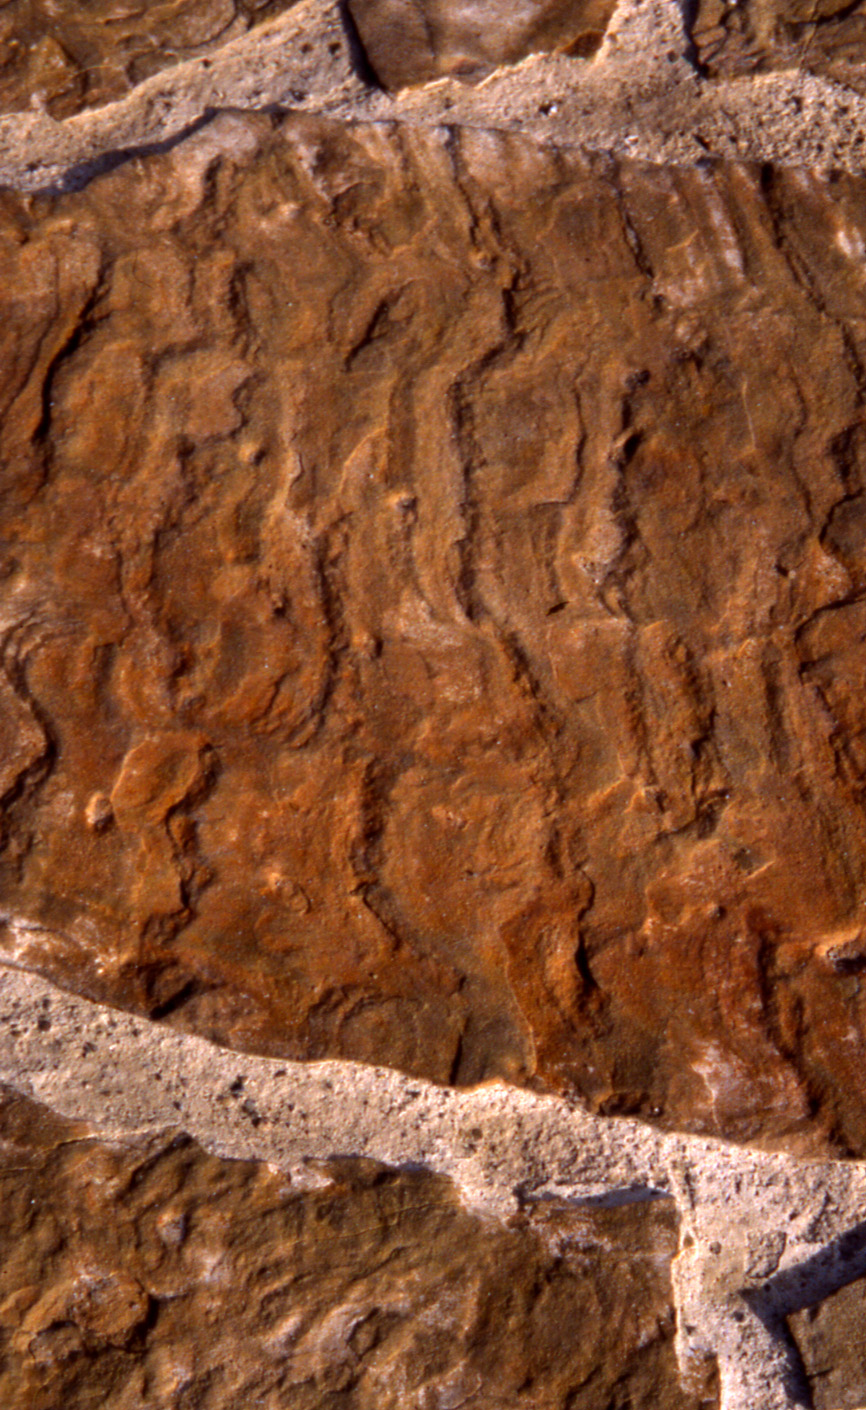 Detail of limestone bearing water marks of the ancient sea that once covered this region.